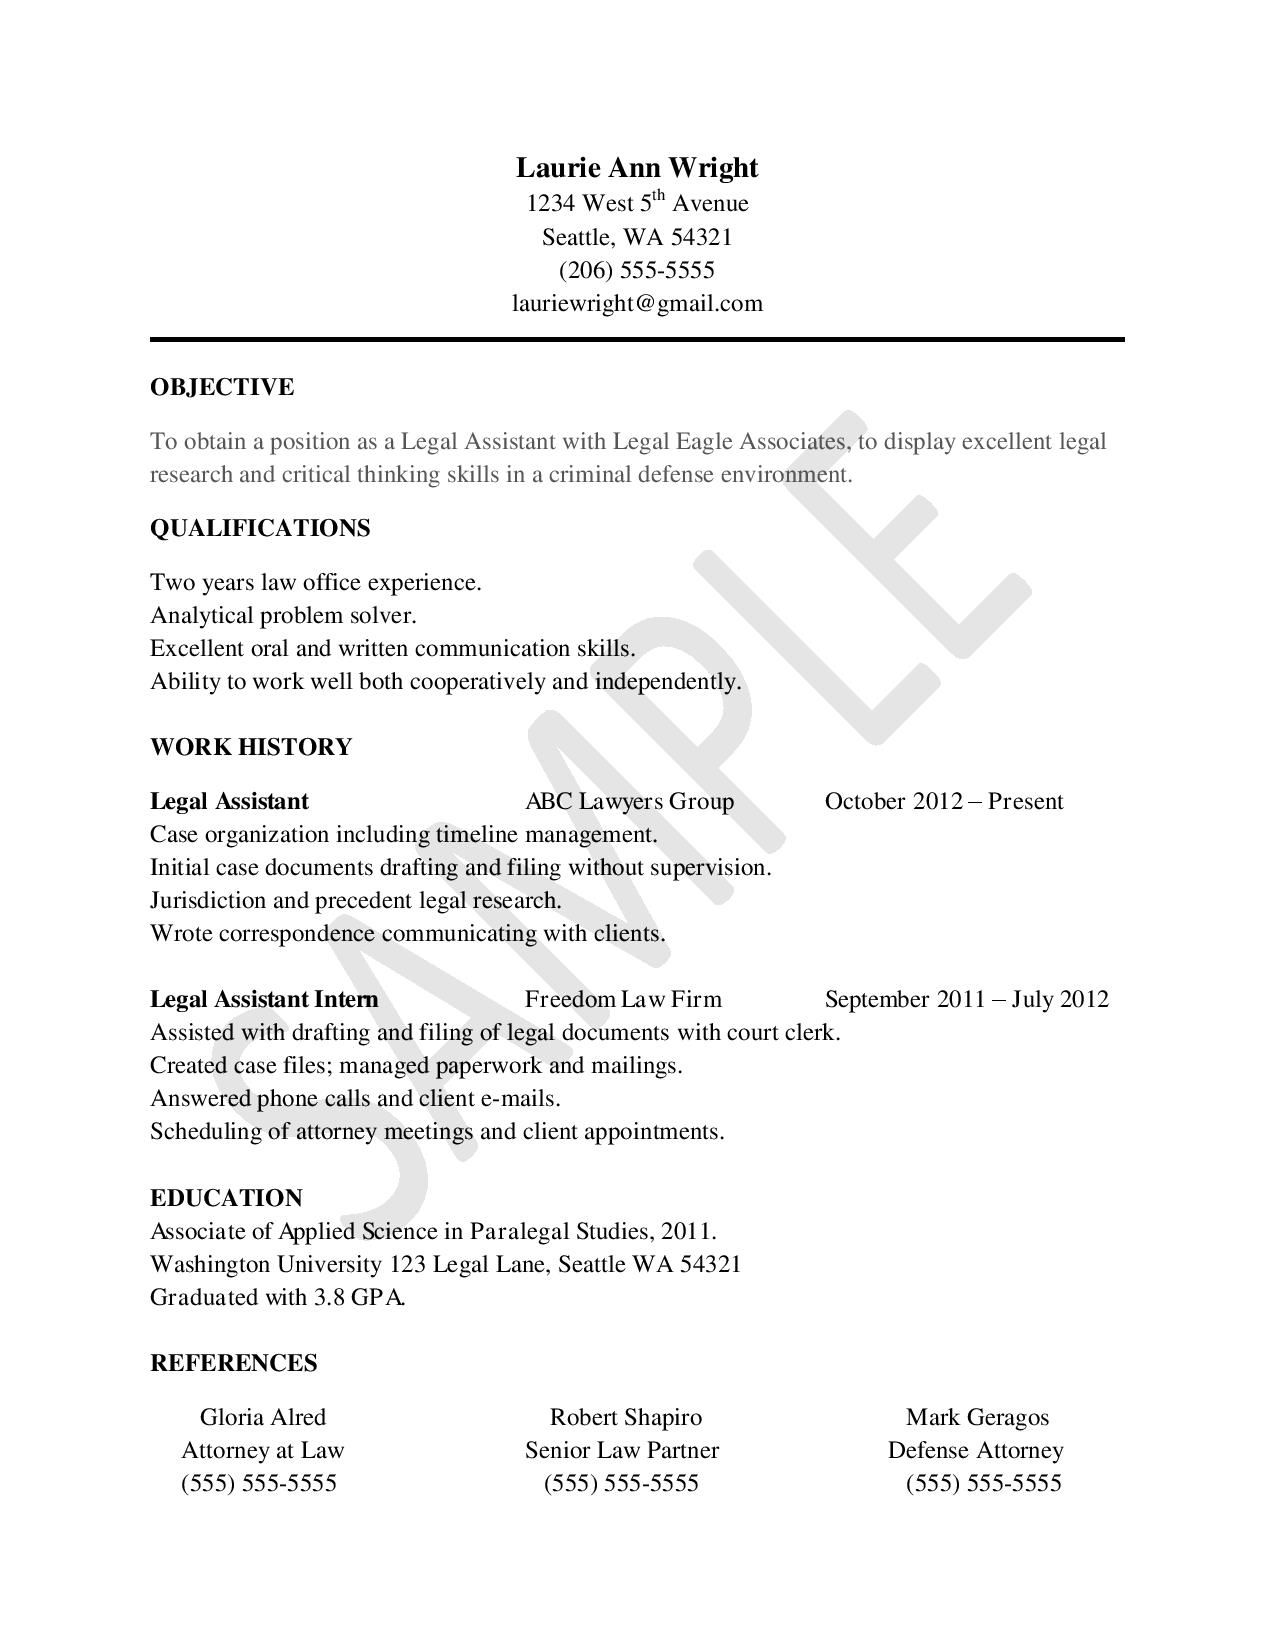 References On Resume Example Sample Resume For Legal Assistants  Legalassistant